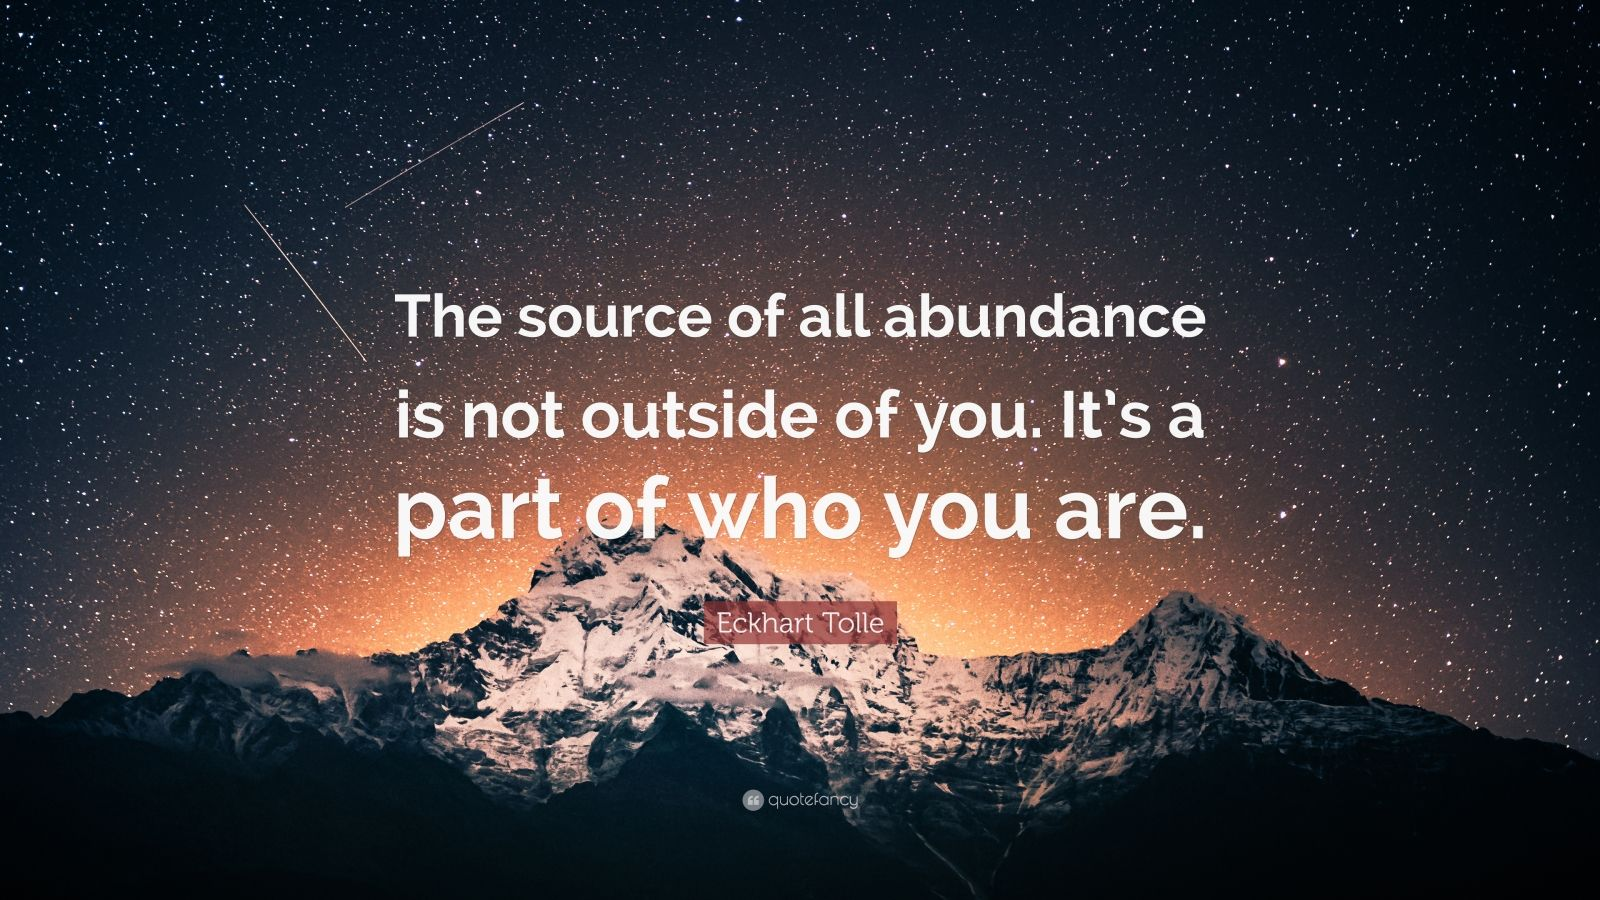 """Eckhart Tolle Quote: """"The source of all abundance is not outside of you. It's a part of who you are."""""""